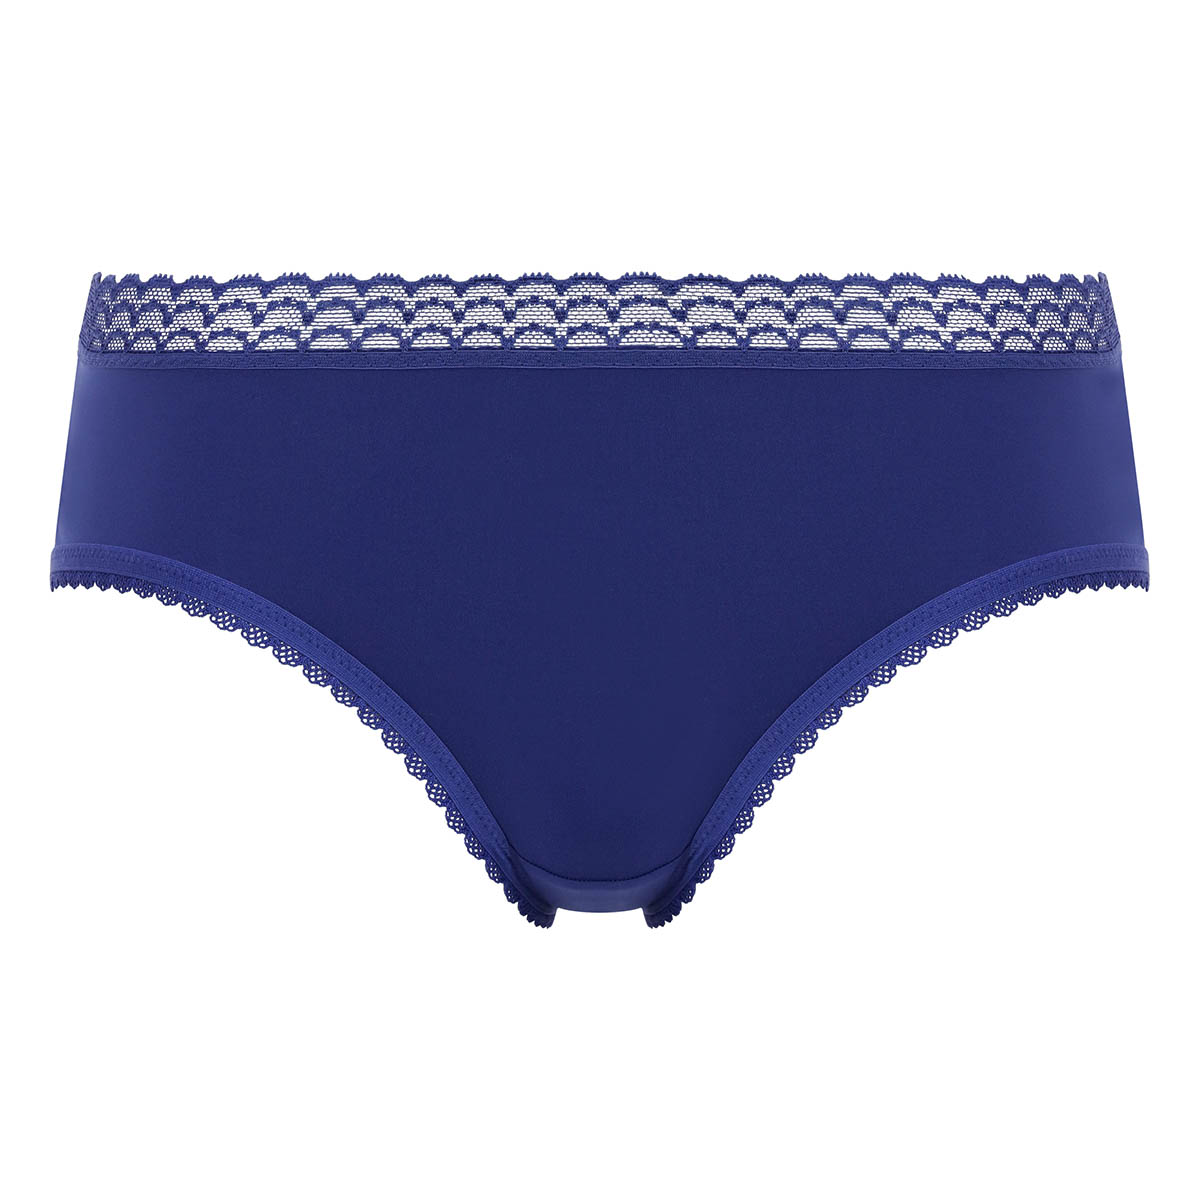 Culotte midi invisible bleu intense Invisible Elegance, , PLAYTEX